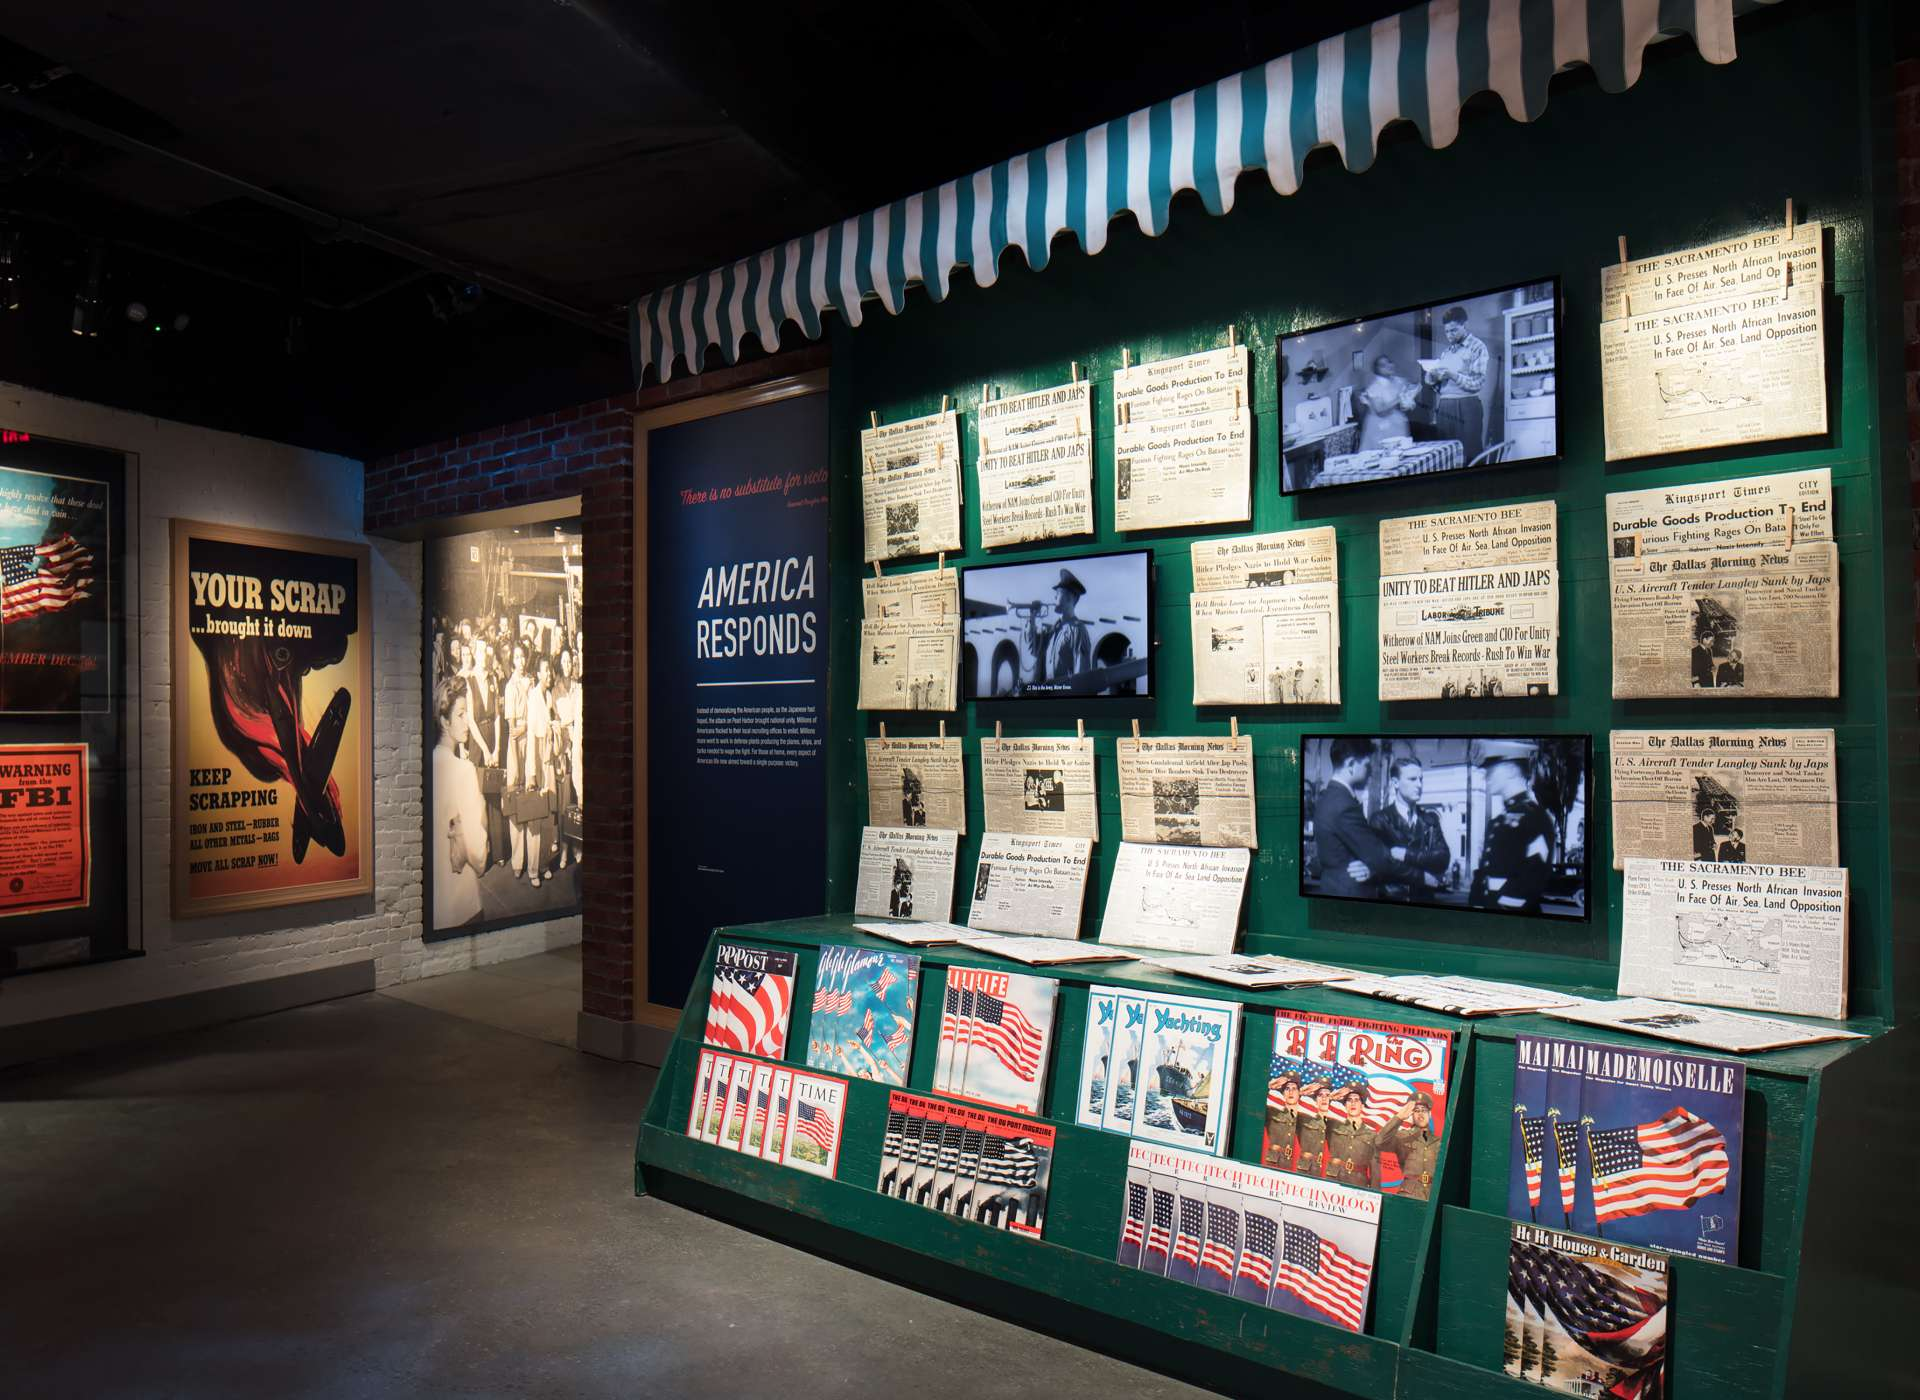 America Responds gallery, newsstand and propaganda posters, Arsenal of Democracy